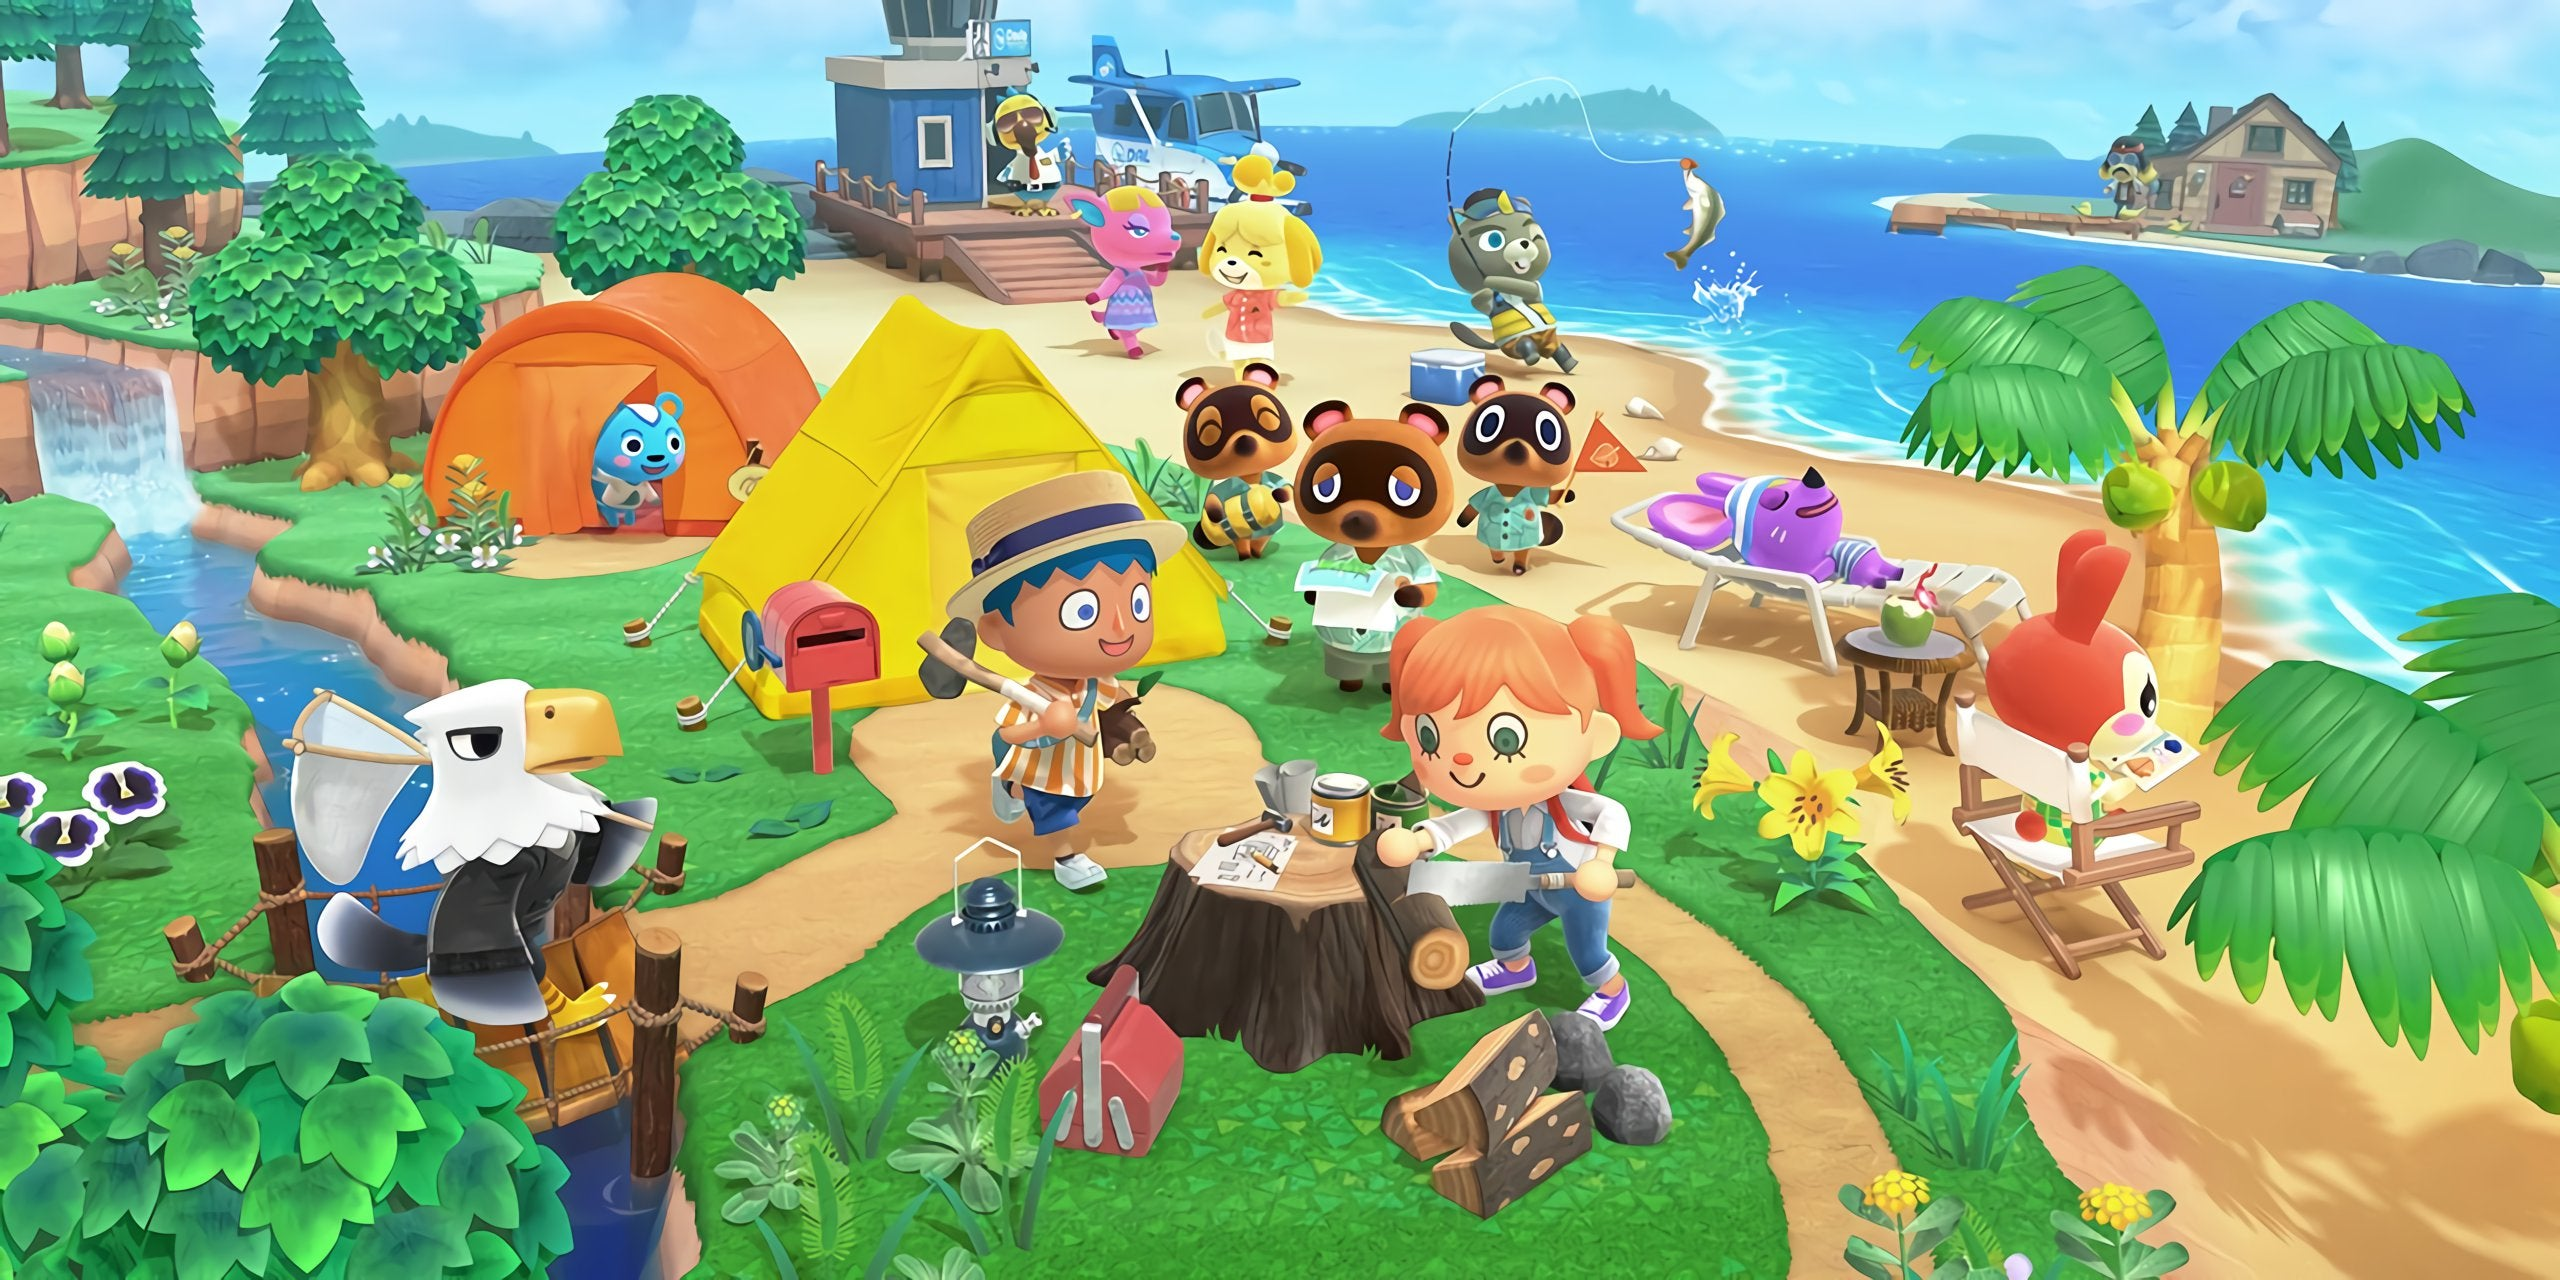 Análisis De Animal Crossing New Horizons Para Nintendo Switch Hobbyconsolas Juegos